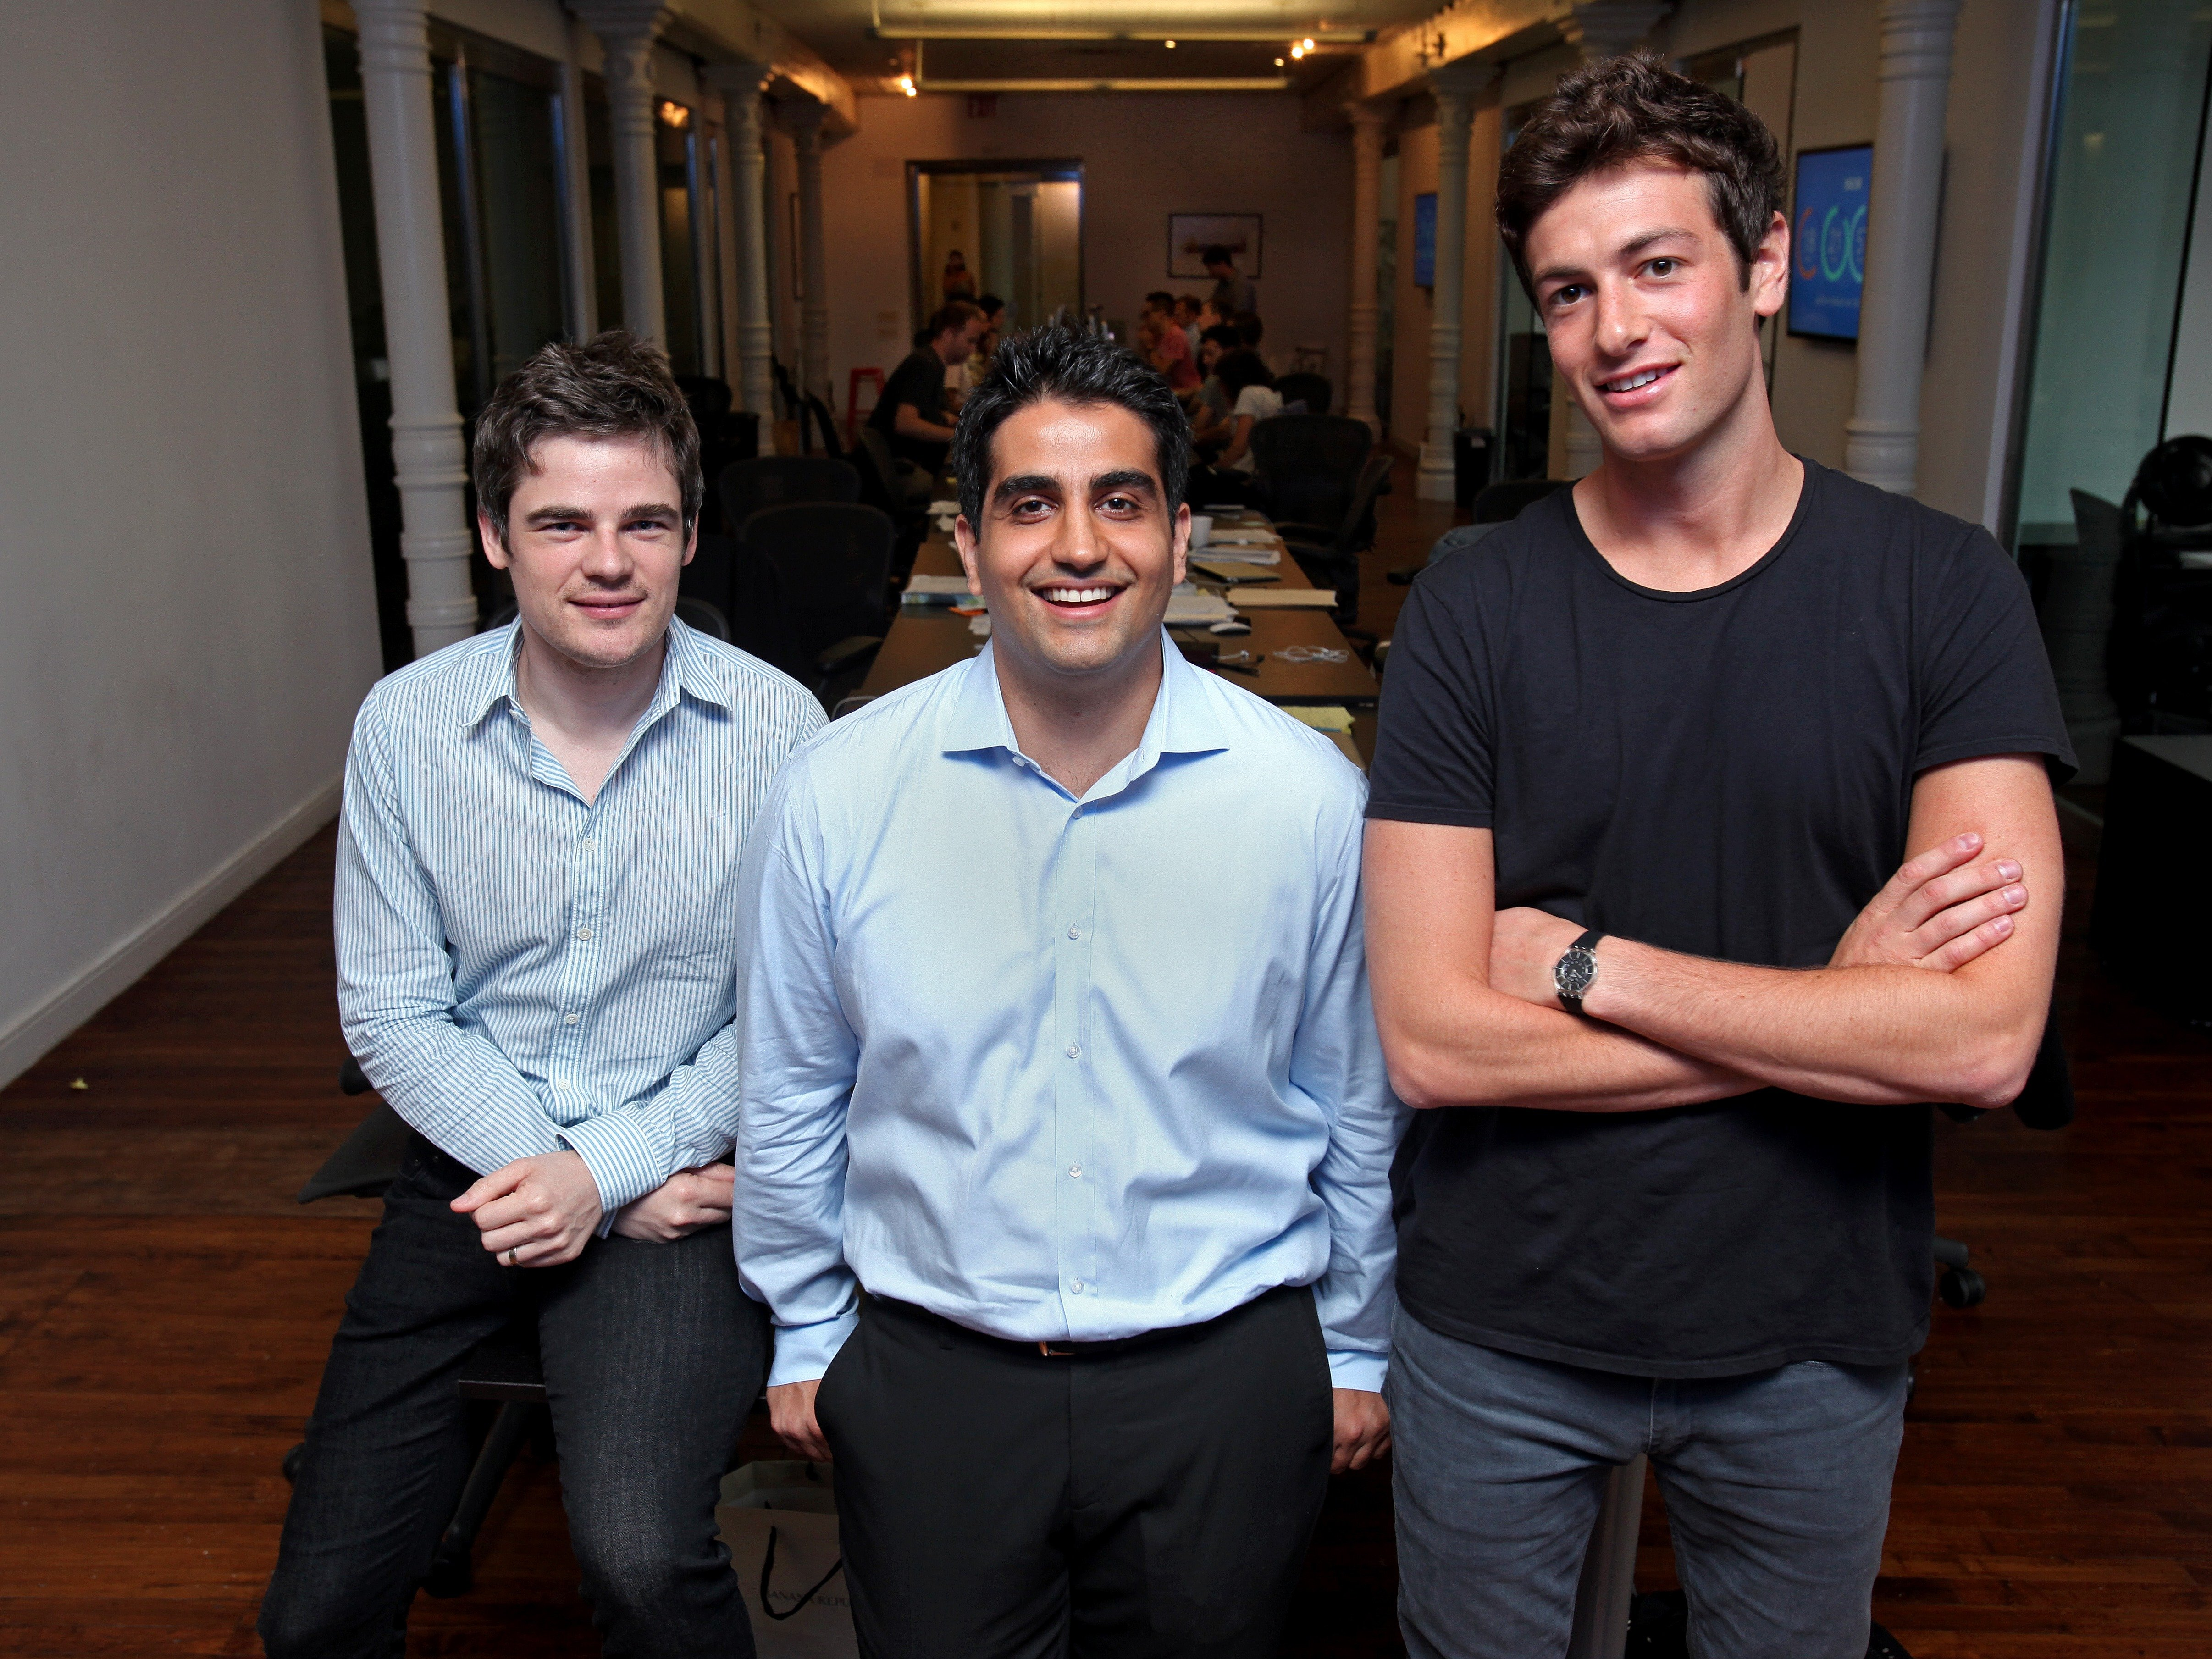 Oscar, a billion-dollar New York startup that wants to shake up healthcare, is reportedly raising even more money at a $3 billion valuation